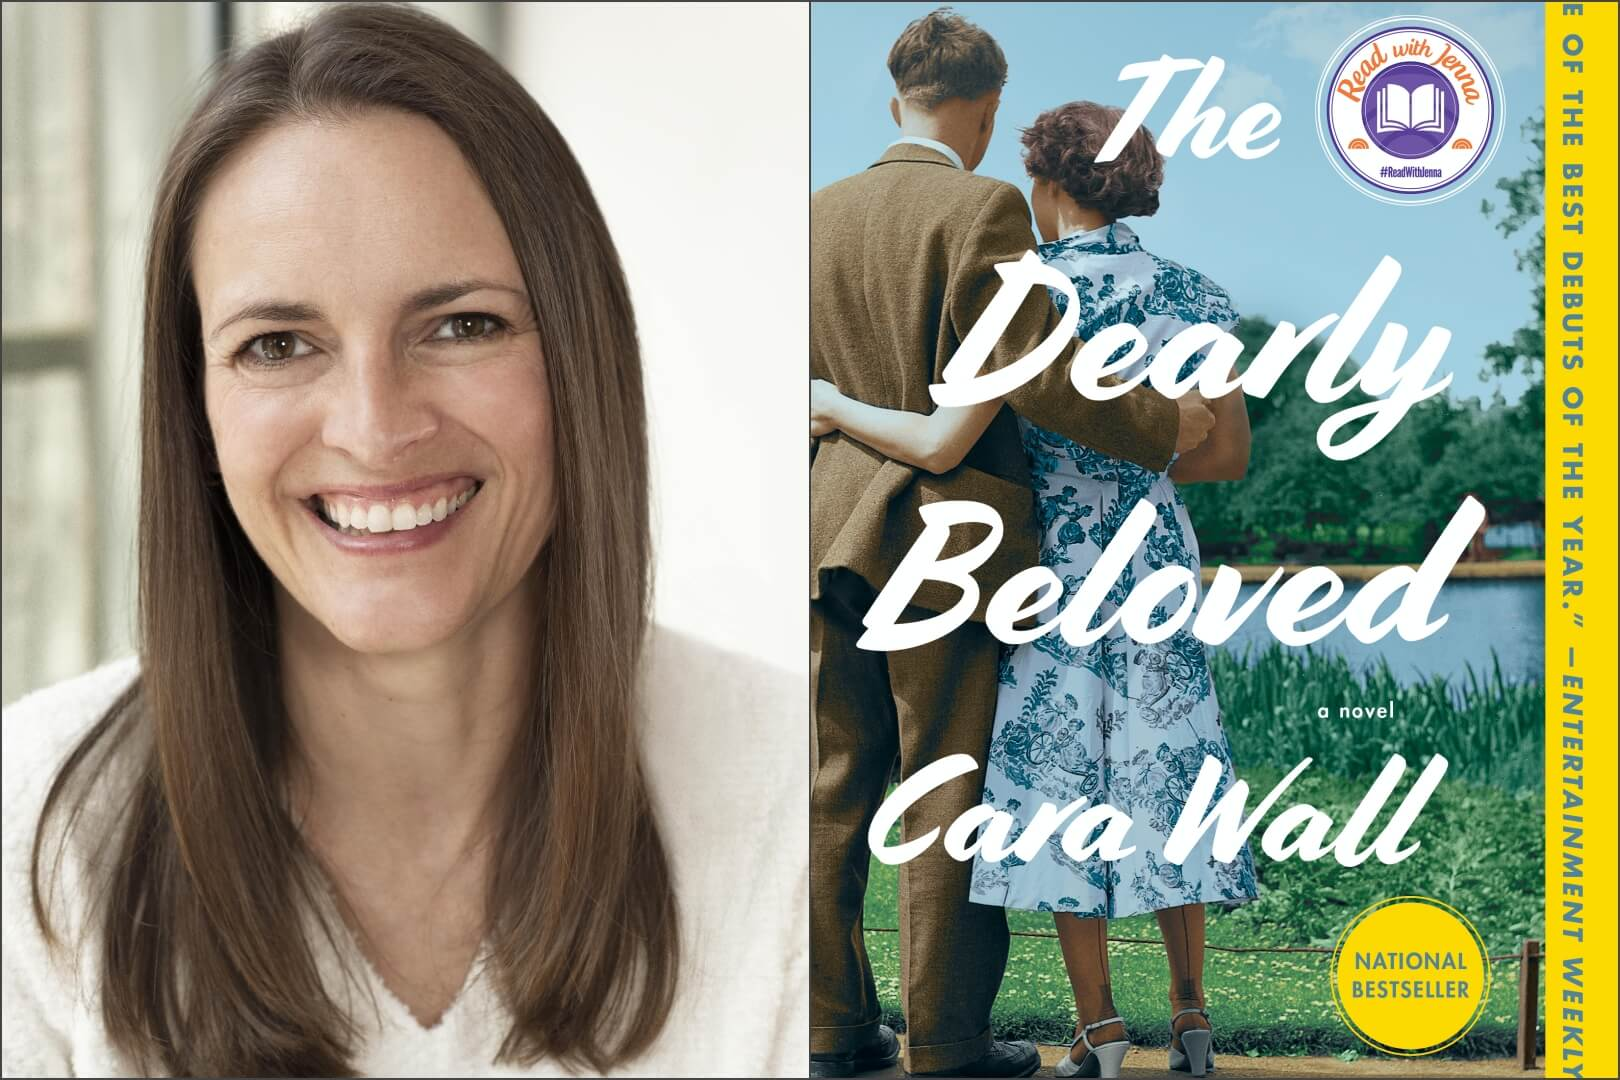 cara wall interview - book club chat